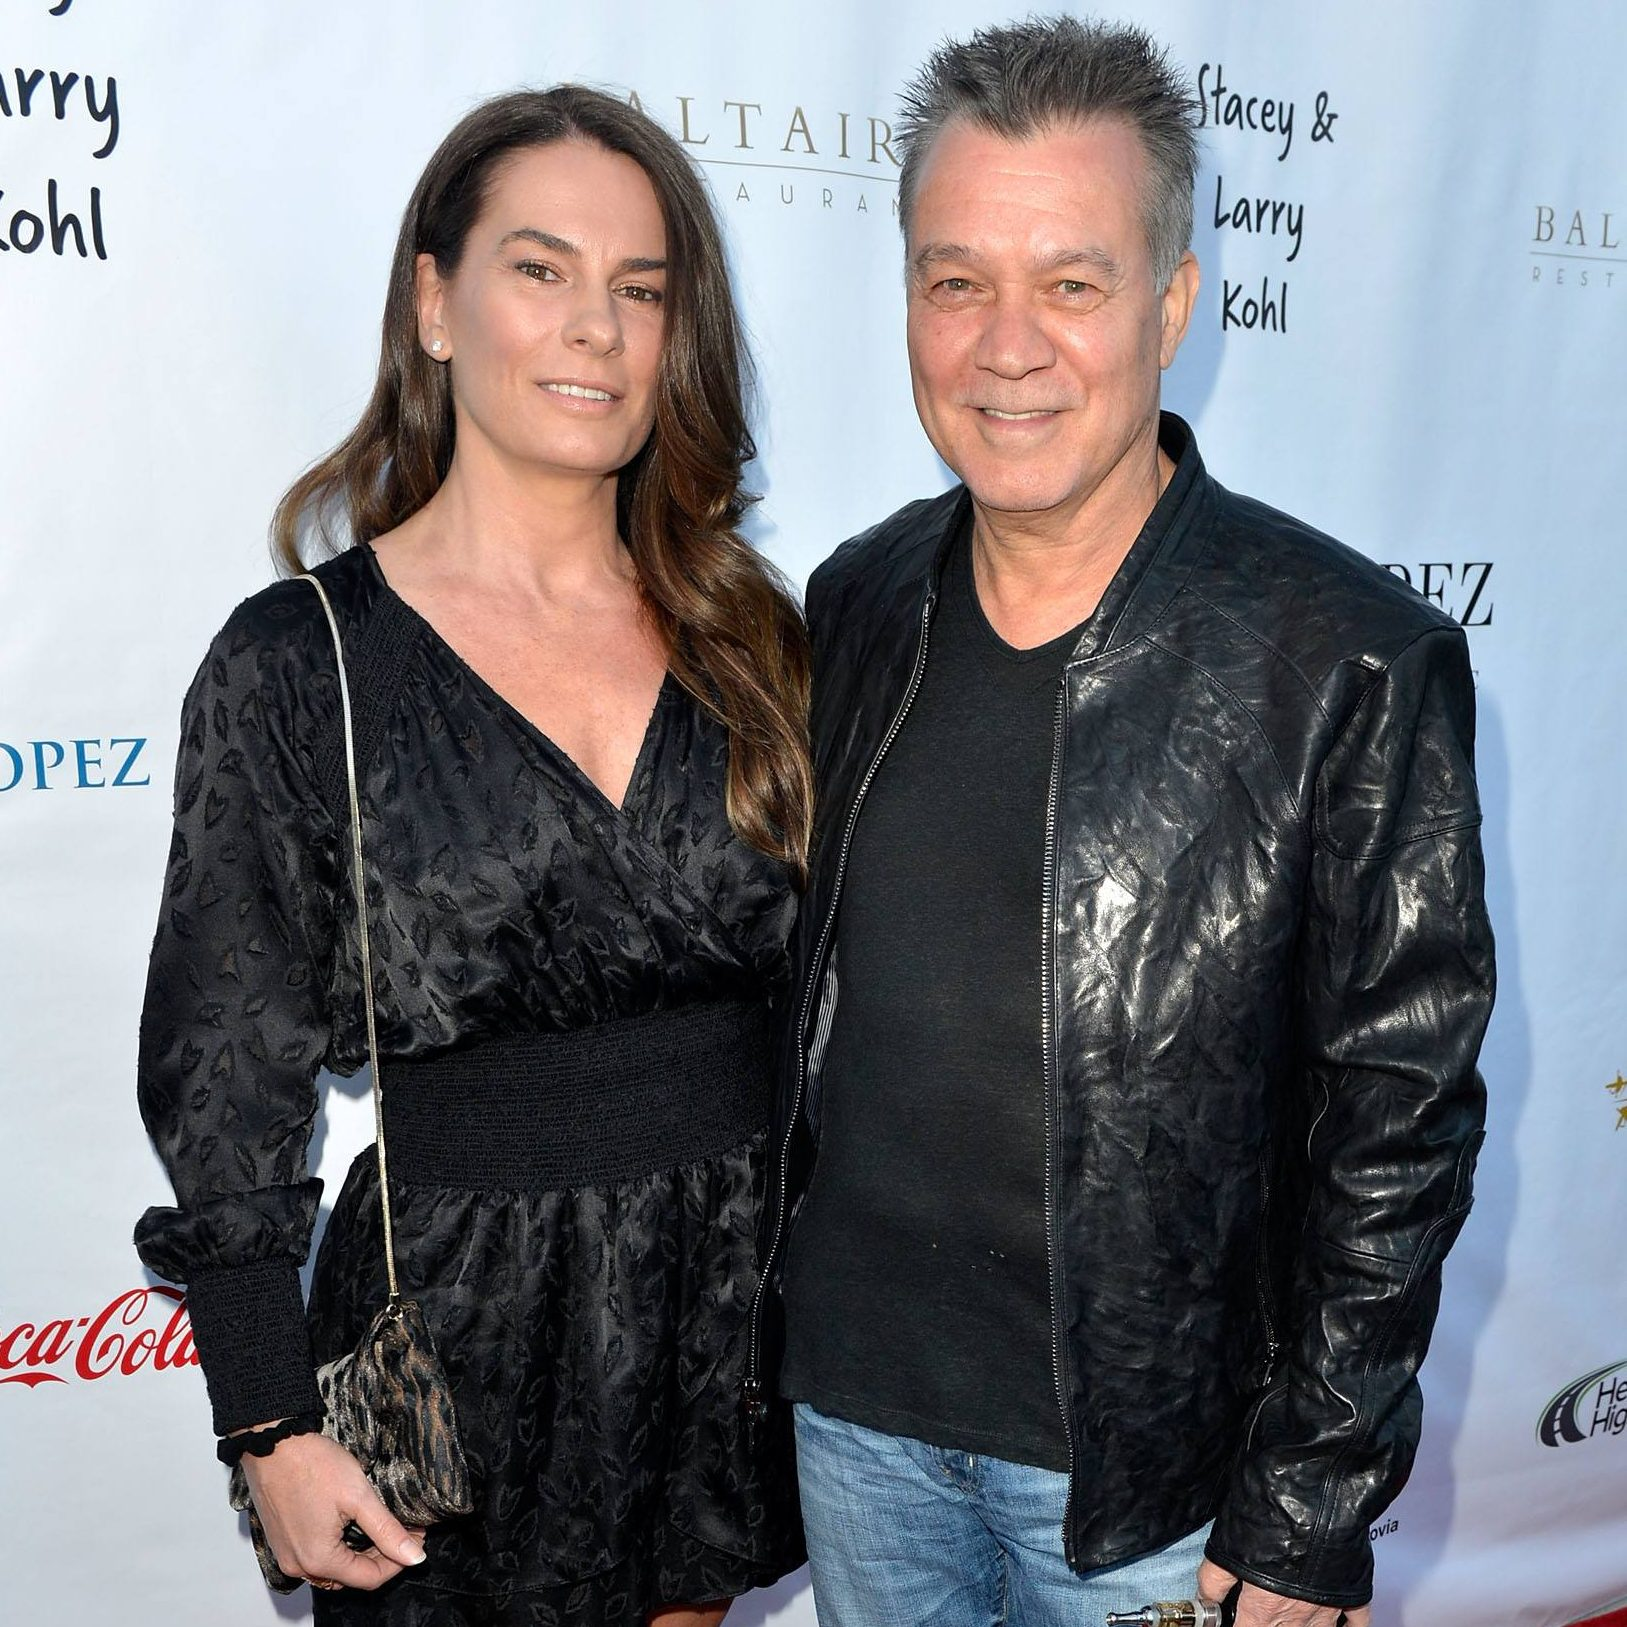 NINTCHDBPICT000612777335 scaled e1602501589724 20 Things You Might Not Have Known About The Late, Great Eddie Van Halen